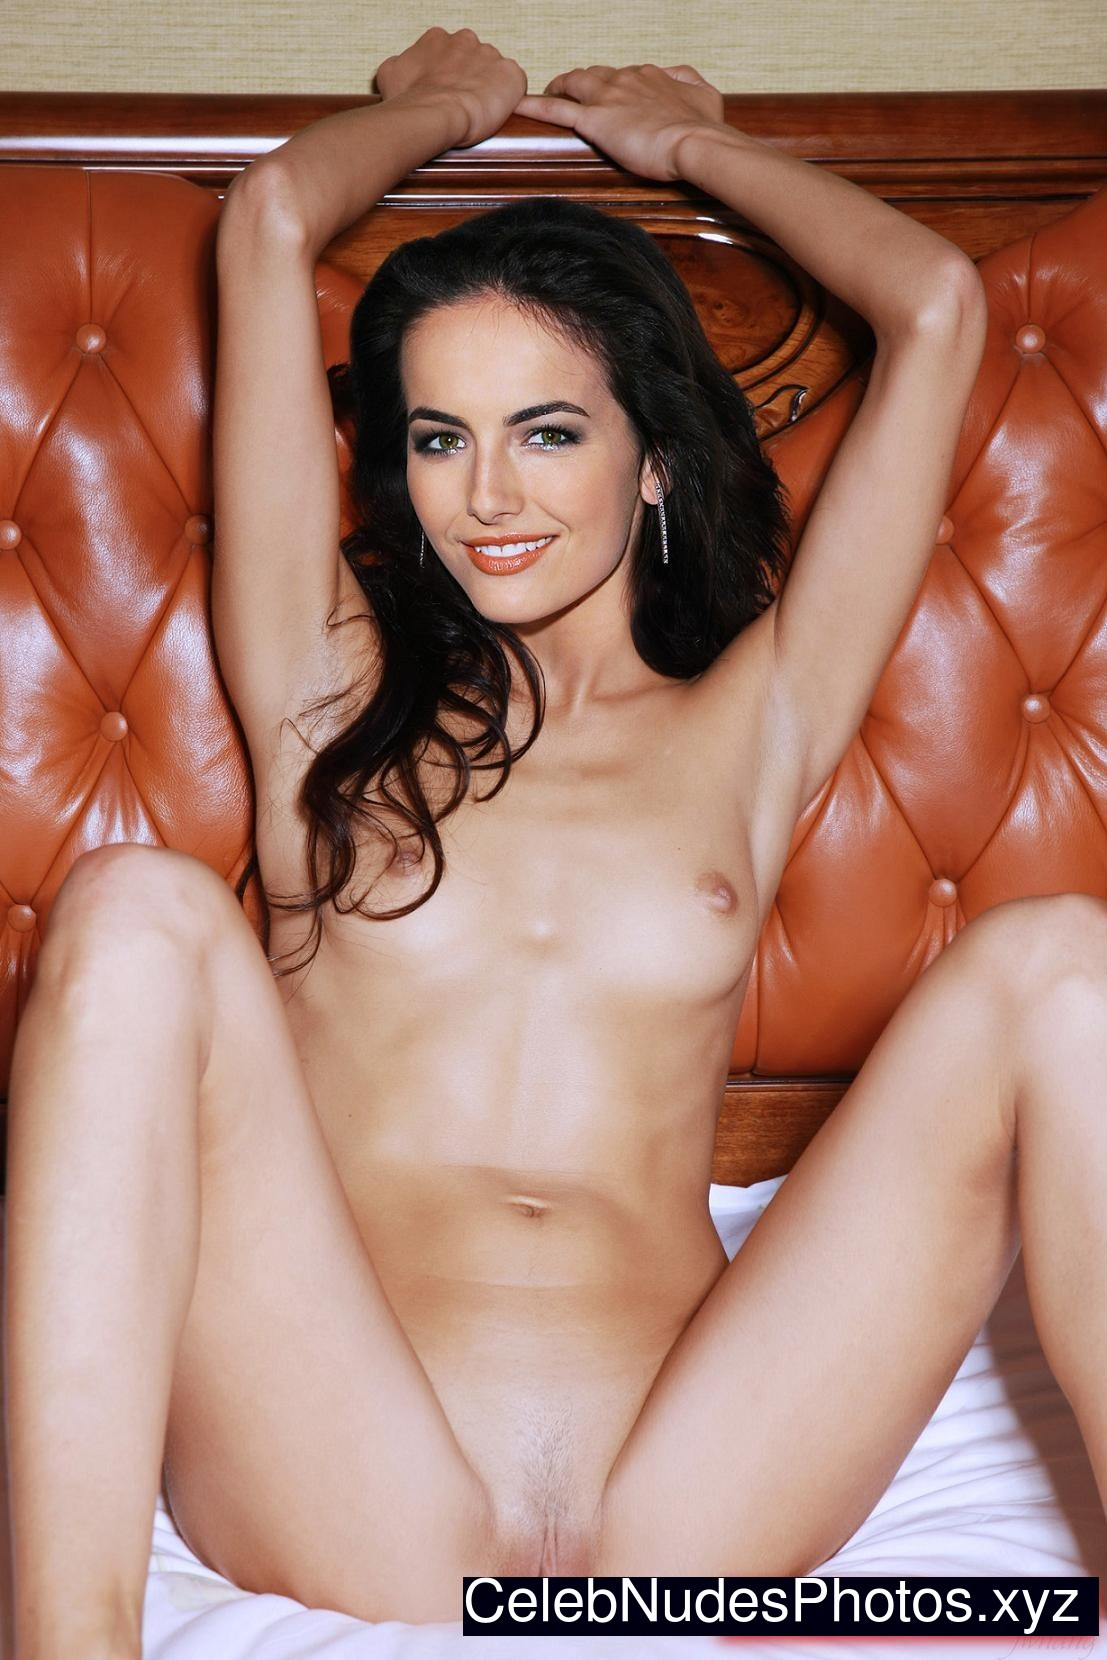 from Harry camilla belle nude photos